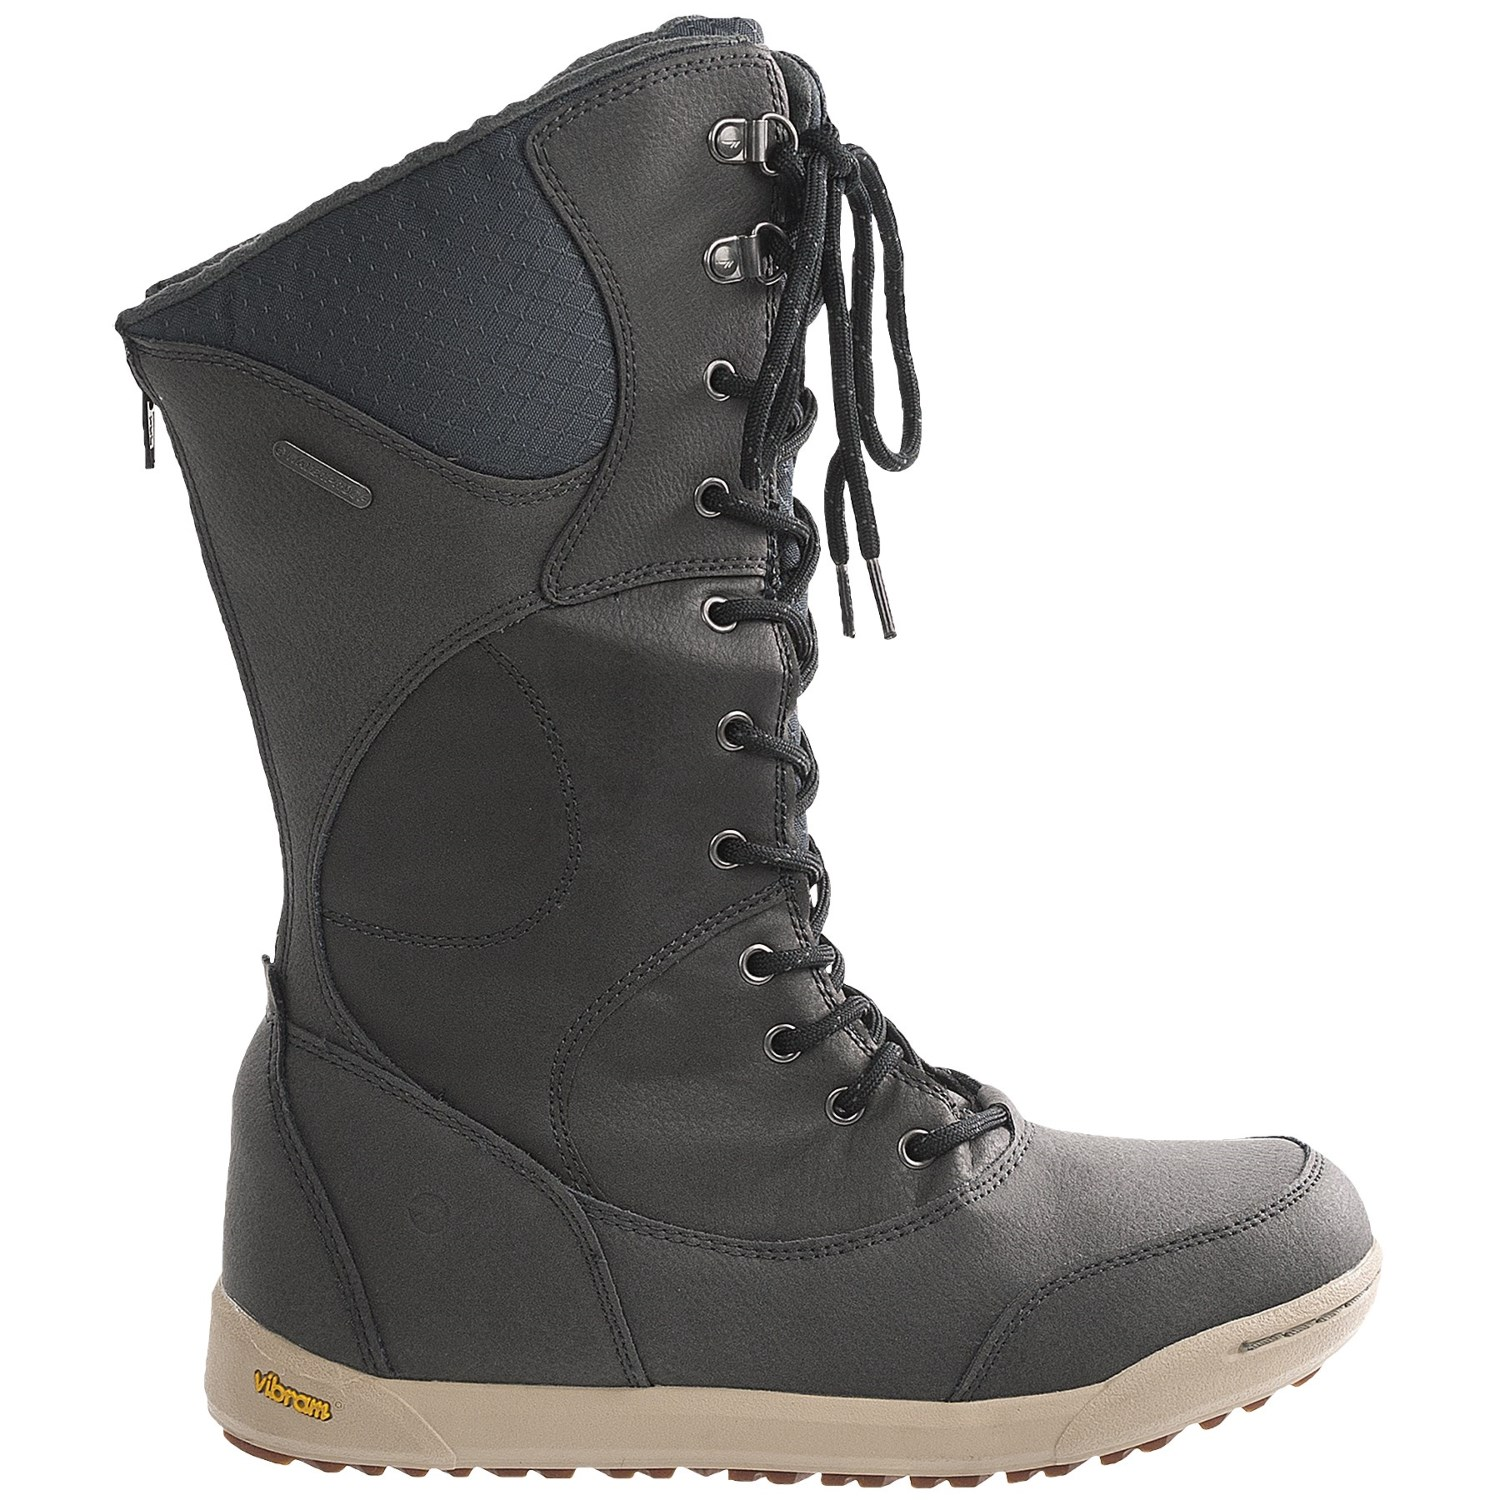 Elegant Womens Waterproof Snow Boots Clearance - Cr Boot